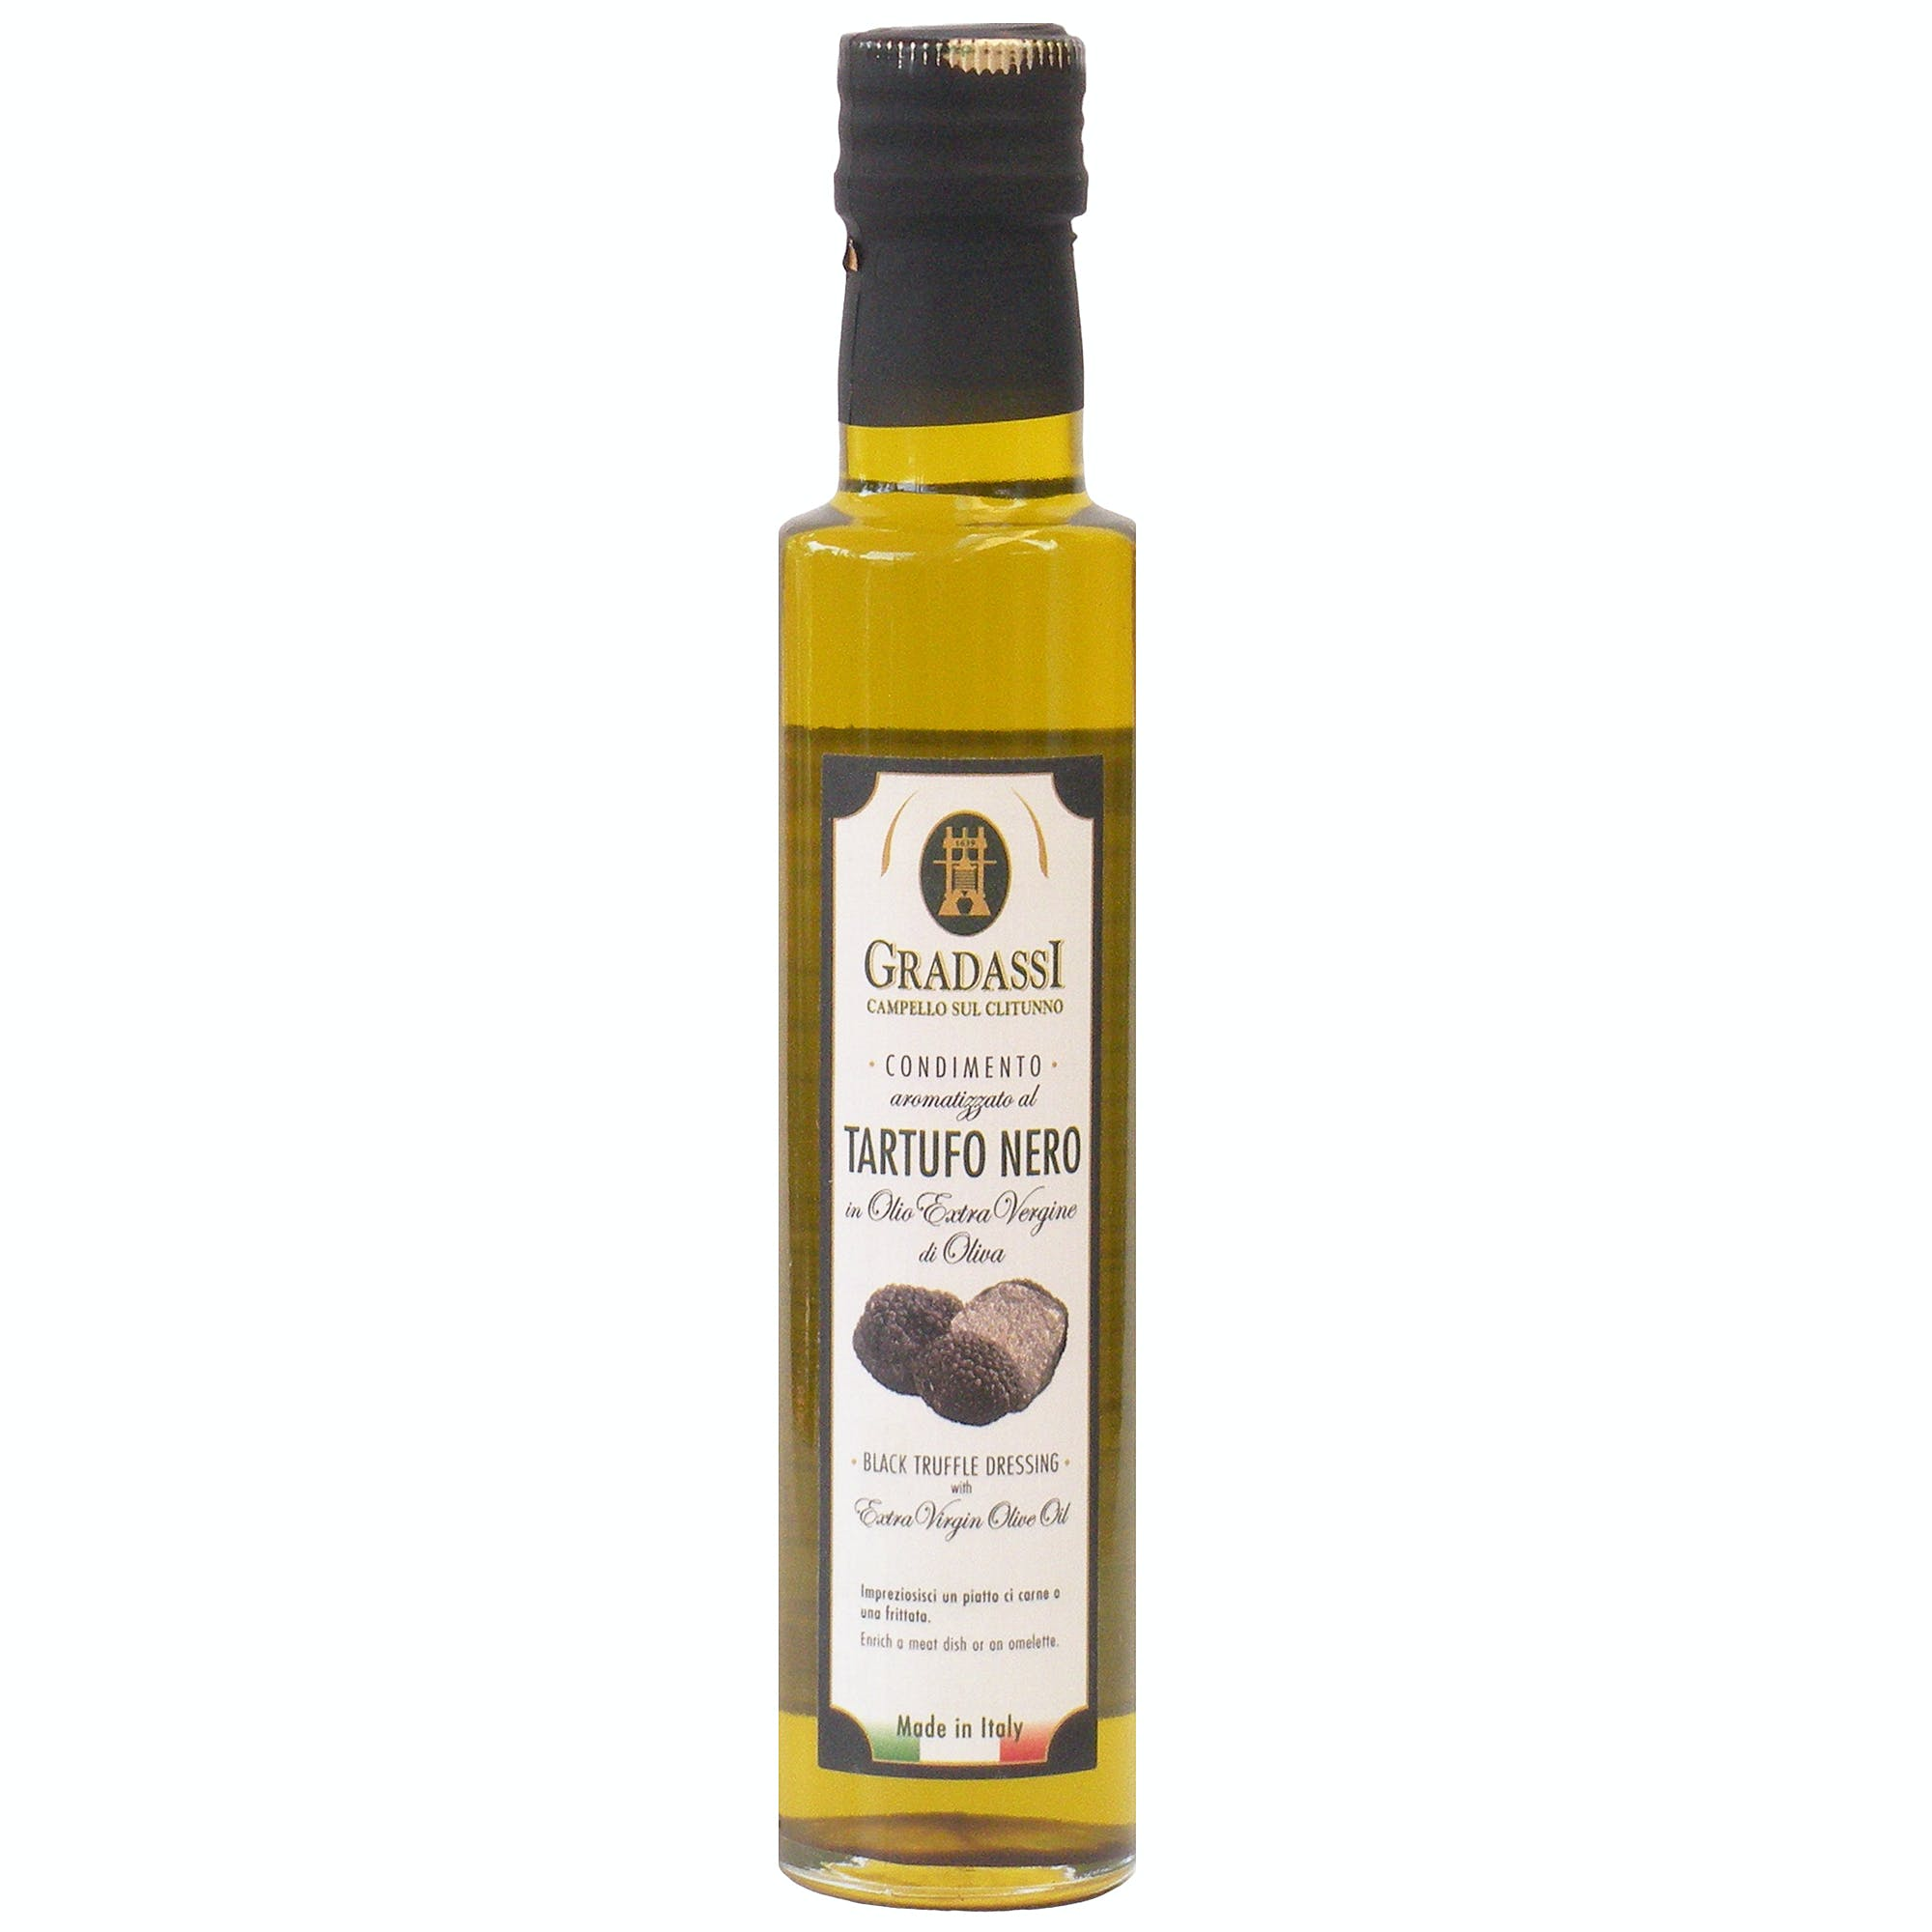 Italian Natural Black Truffle Infused Extra Virgin Olive Oil Dressing From Cufrol, 8.5 Ounces Infused oil sold by M5 Corporation